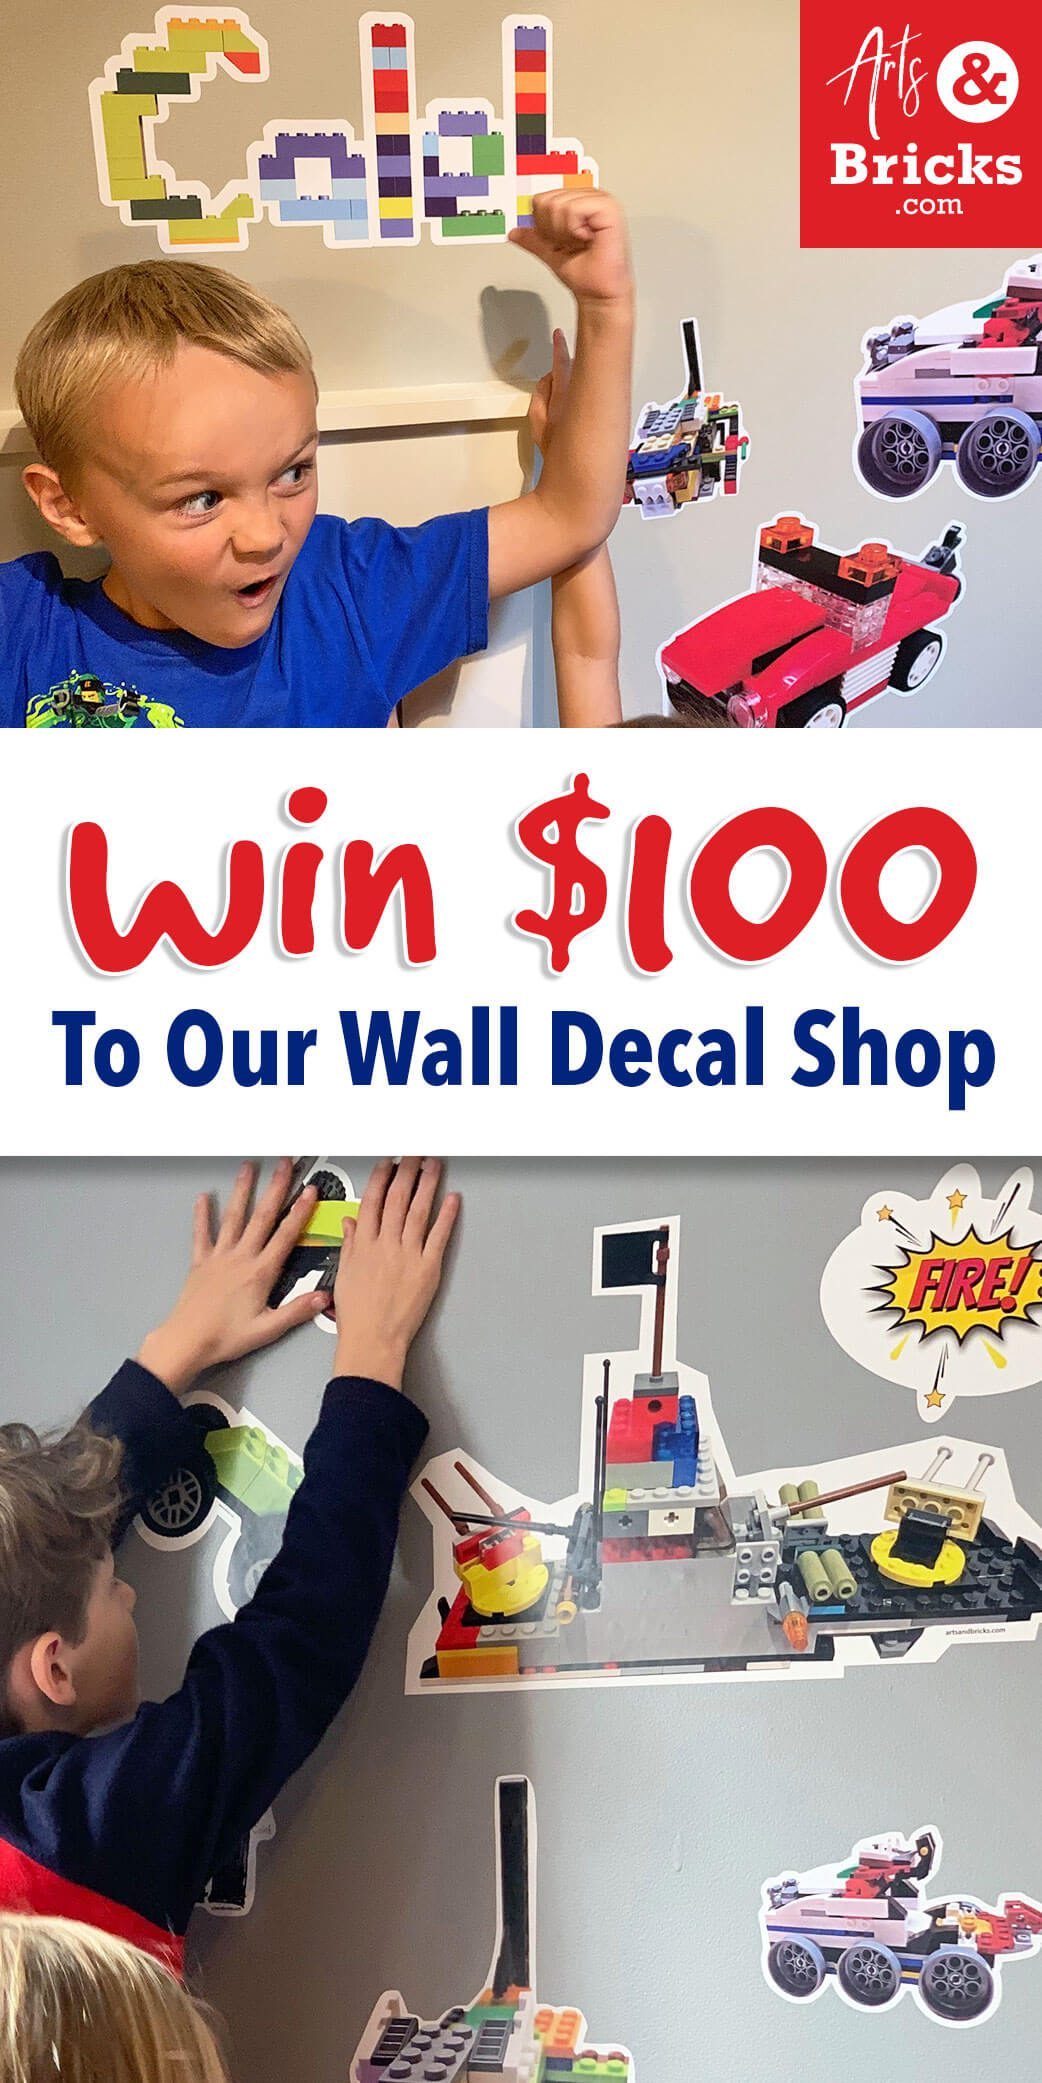 Enter to win $100 to Arts and Bricks Wall Decal Shop. Decals feature brick-built designs perfect for a LEGO playroom or LEGO-themed bedroom. They also feature kid-drawn artwork. #entertowin #legoroom #legoplayroom #walldecor #brickbuilt #artsandbricks